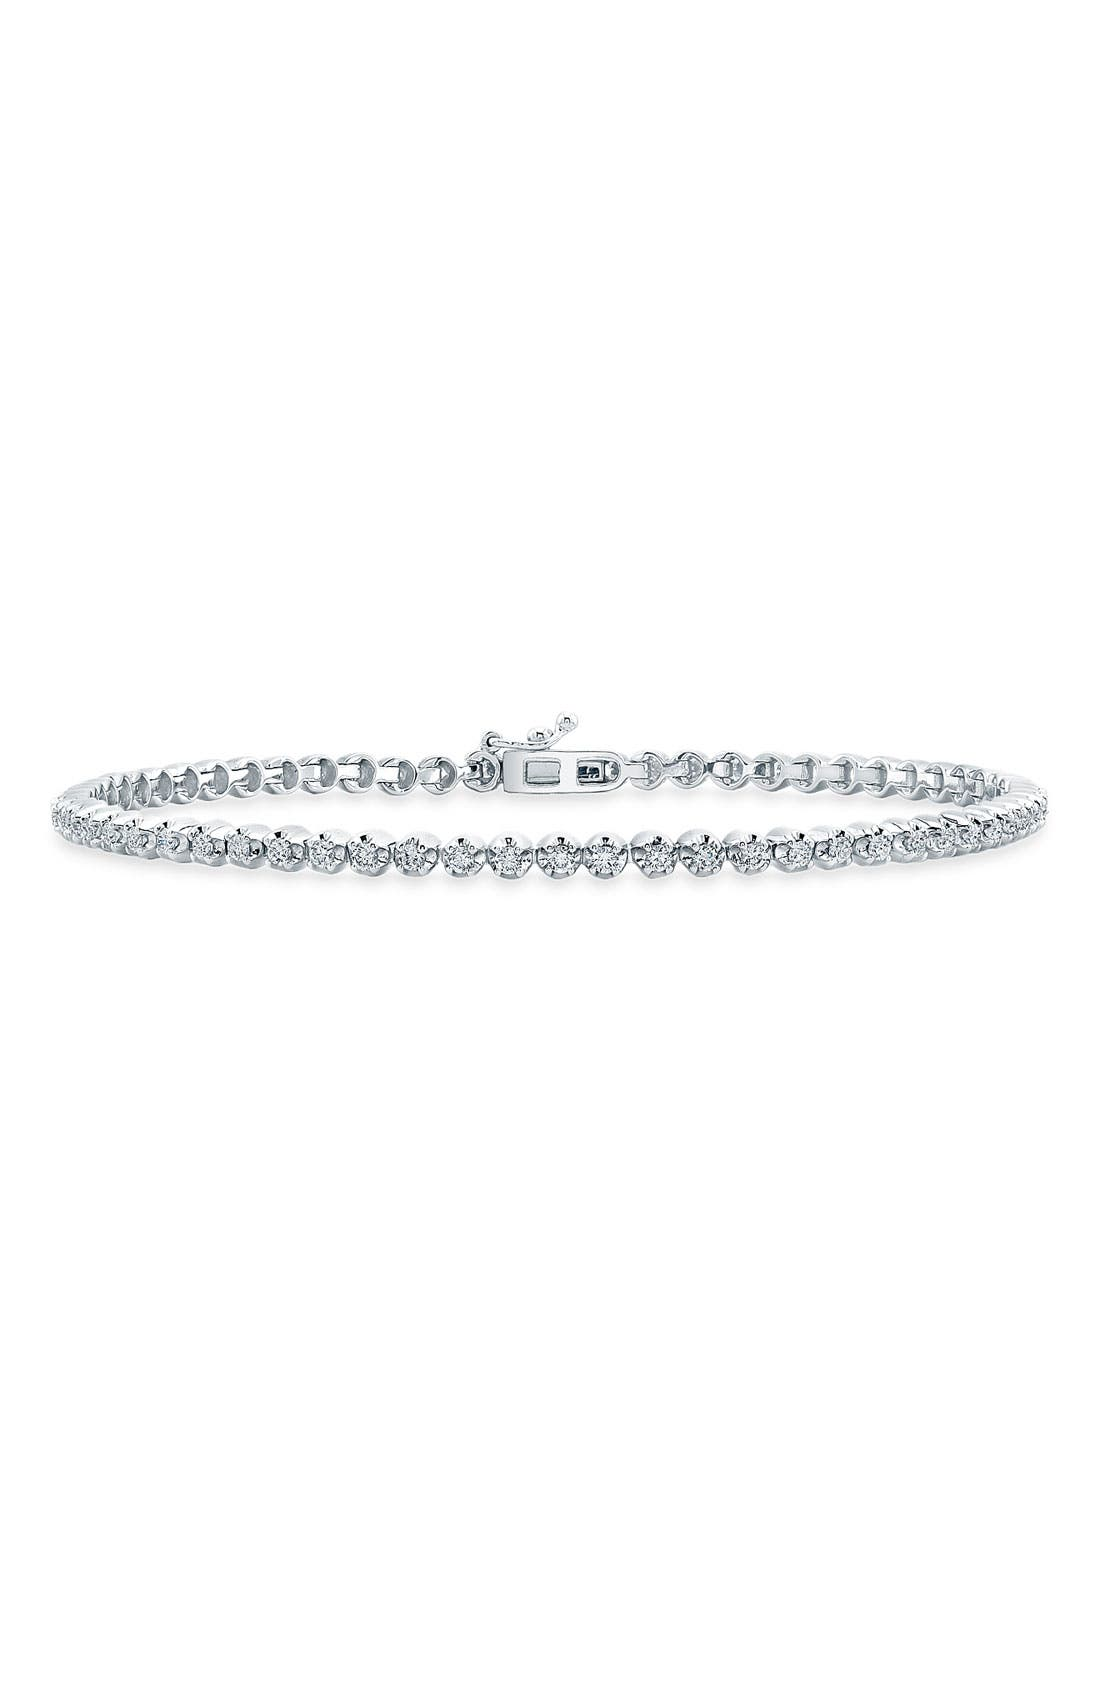 Main Image - Bony Levy Diamond Line Bracelet (Nordstrom Exclusive) (Limited Edition)